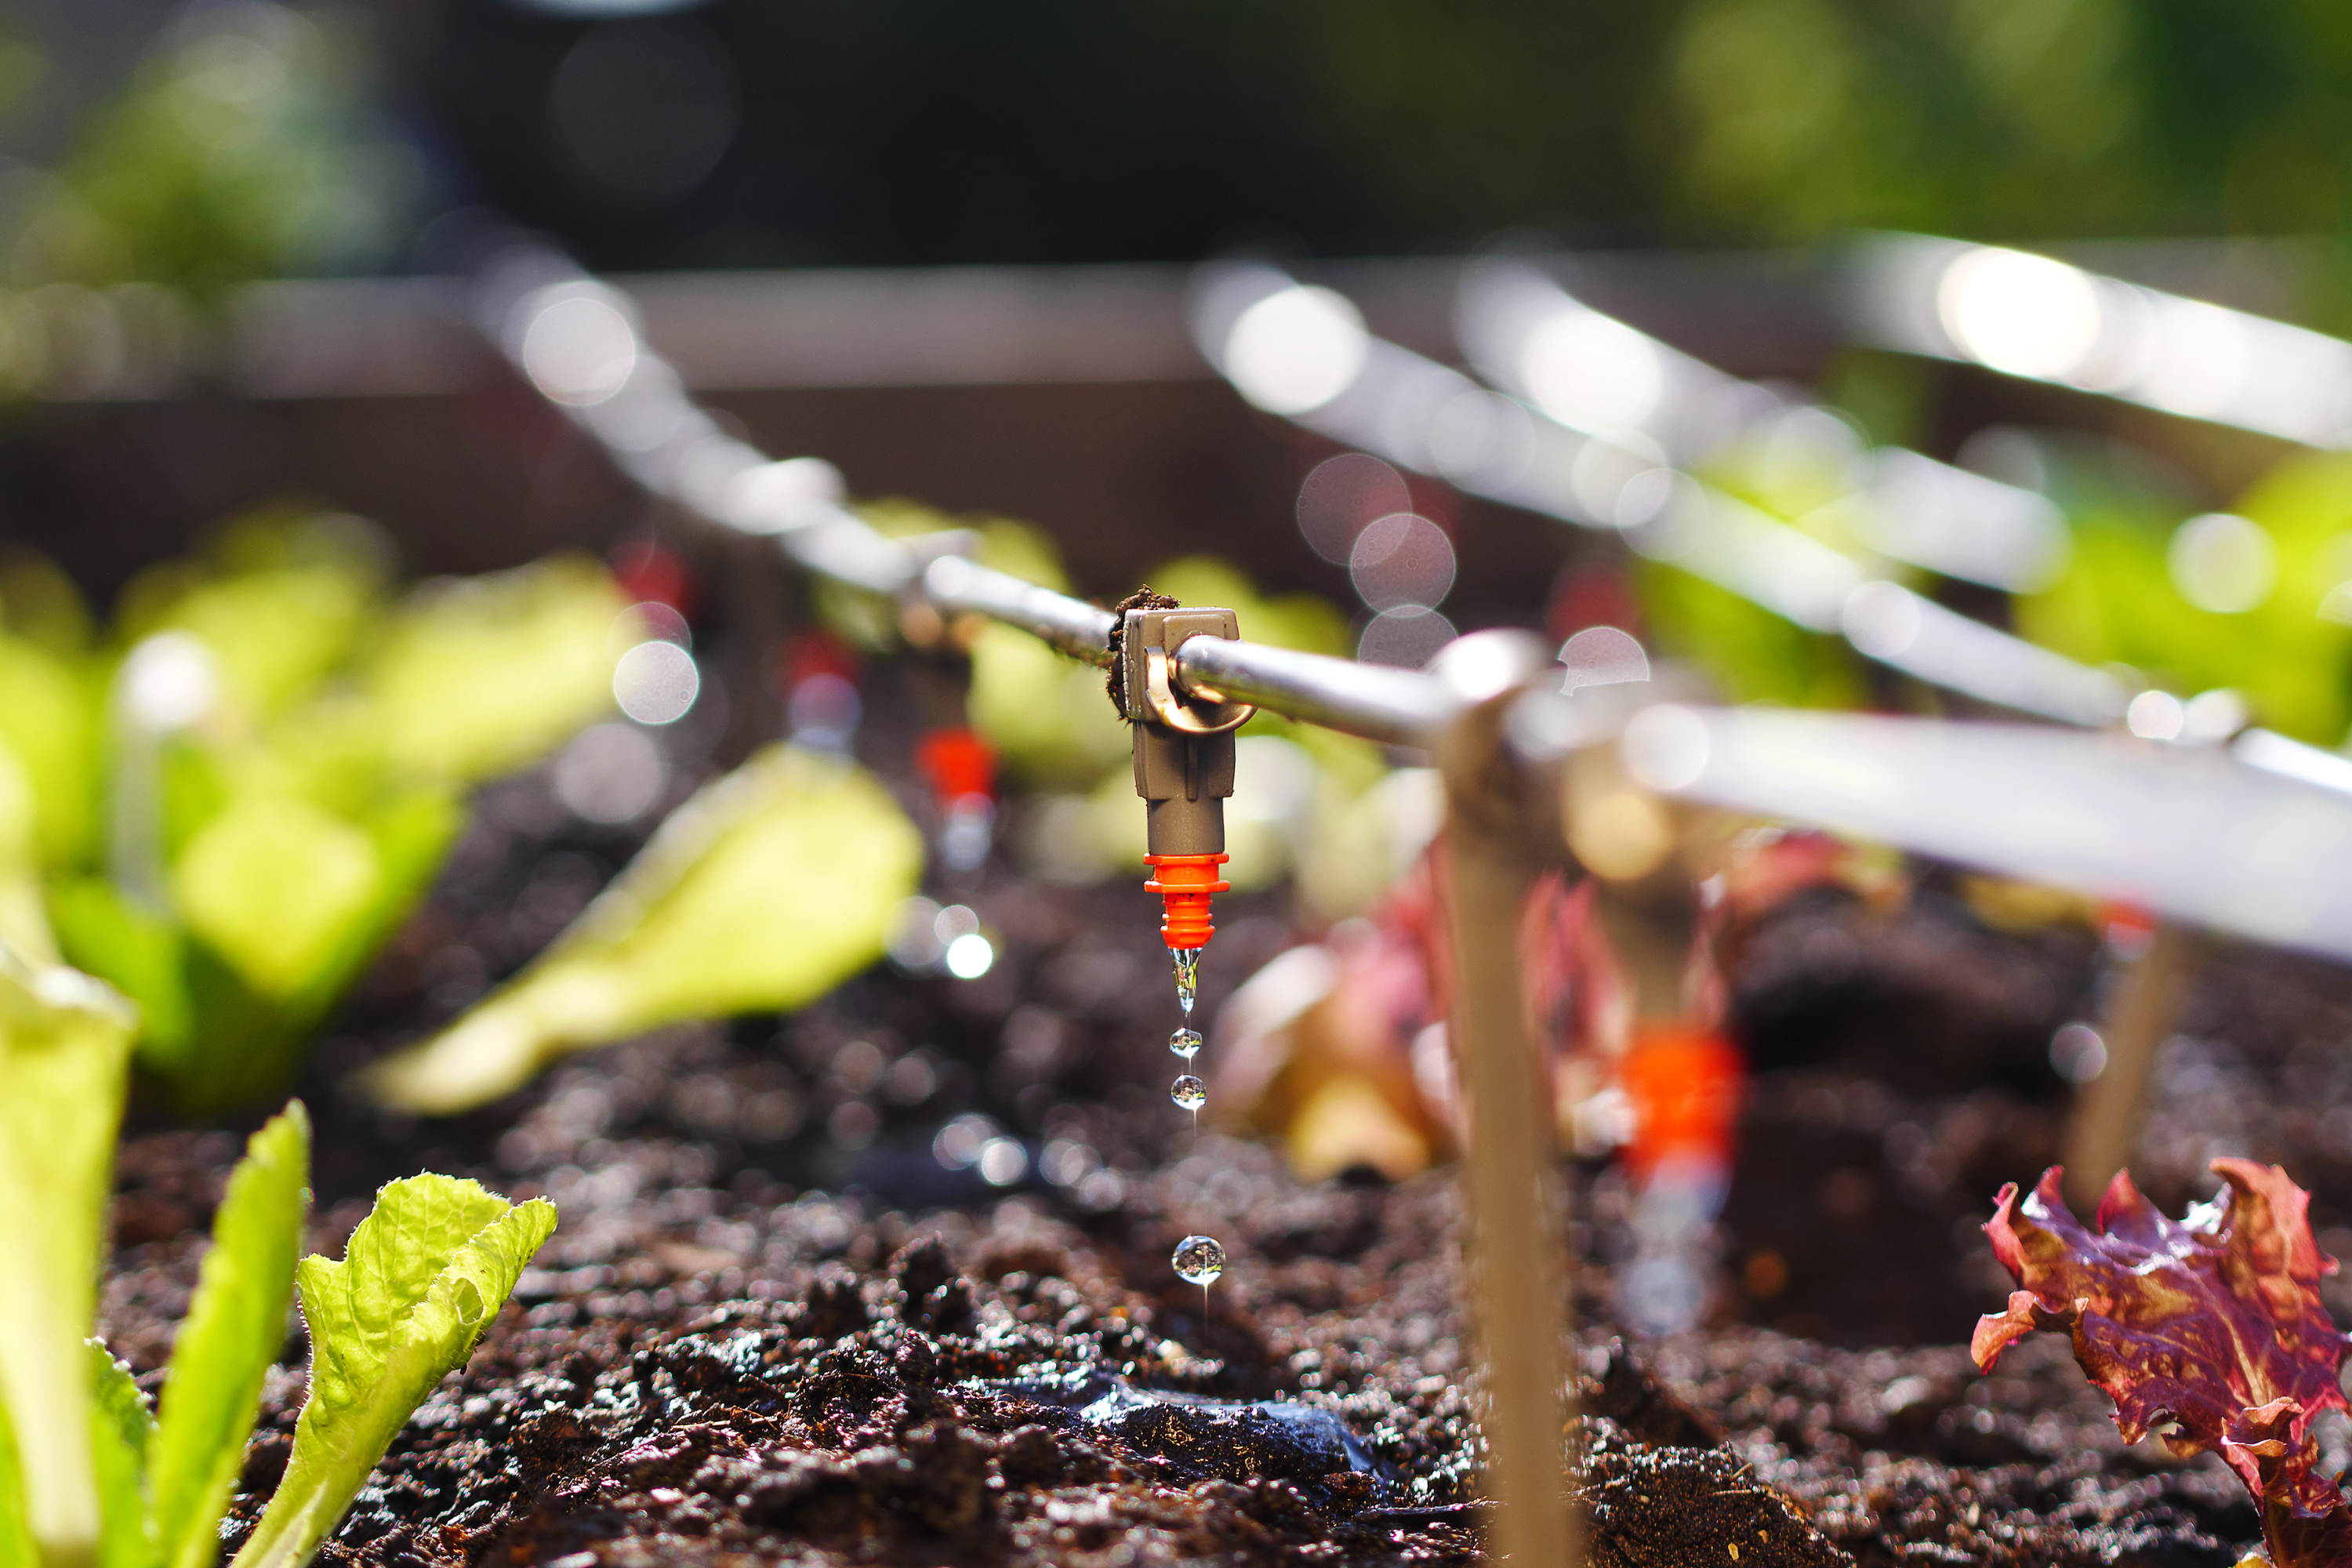 Having a drip irrigation system is so important for your yard. Here's how you can DIY a drip irrigation system for your garden.